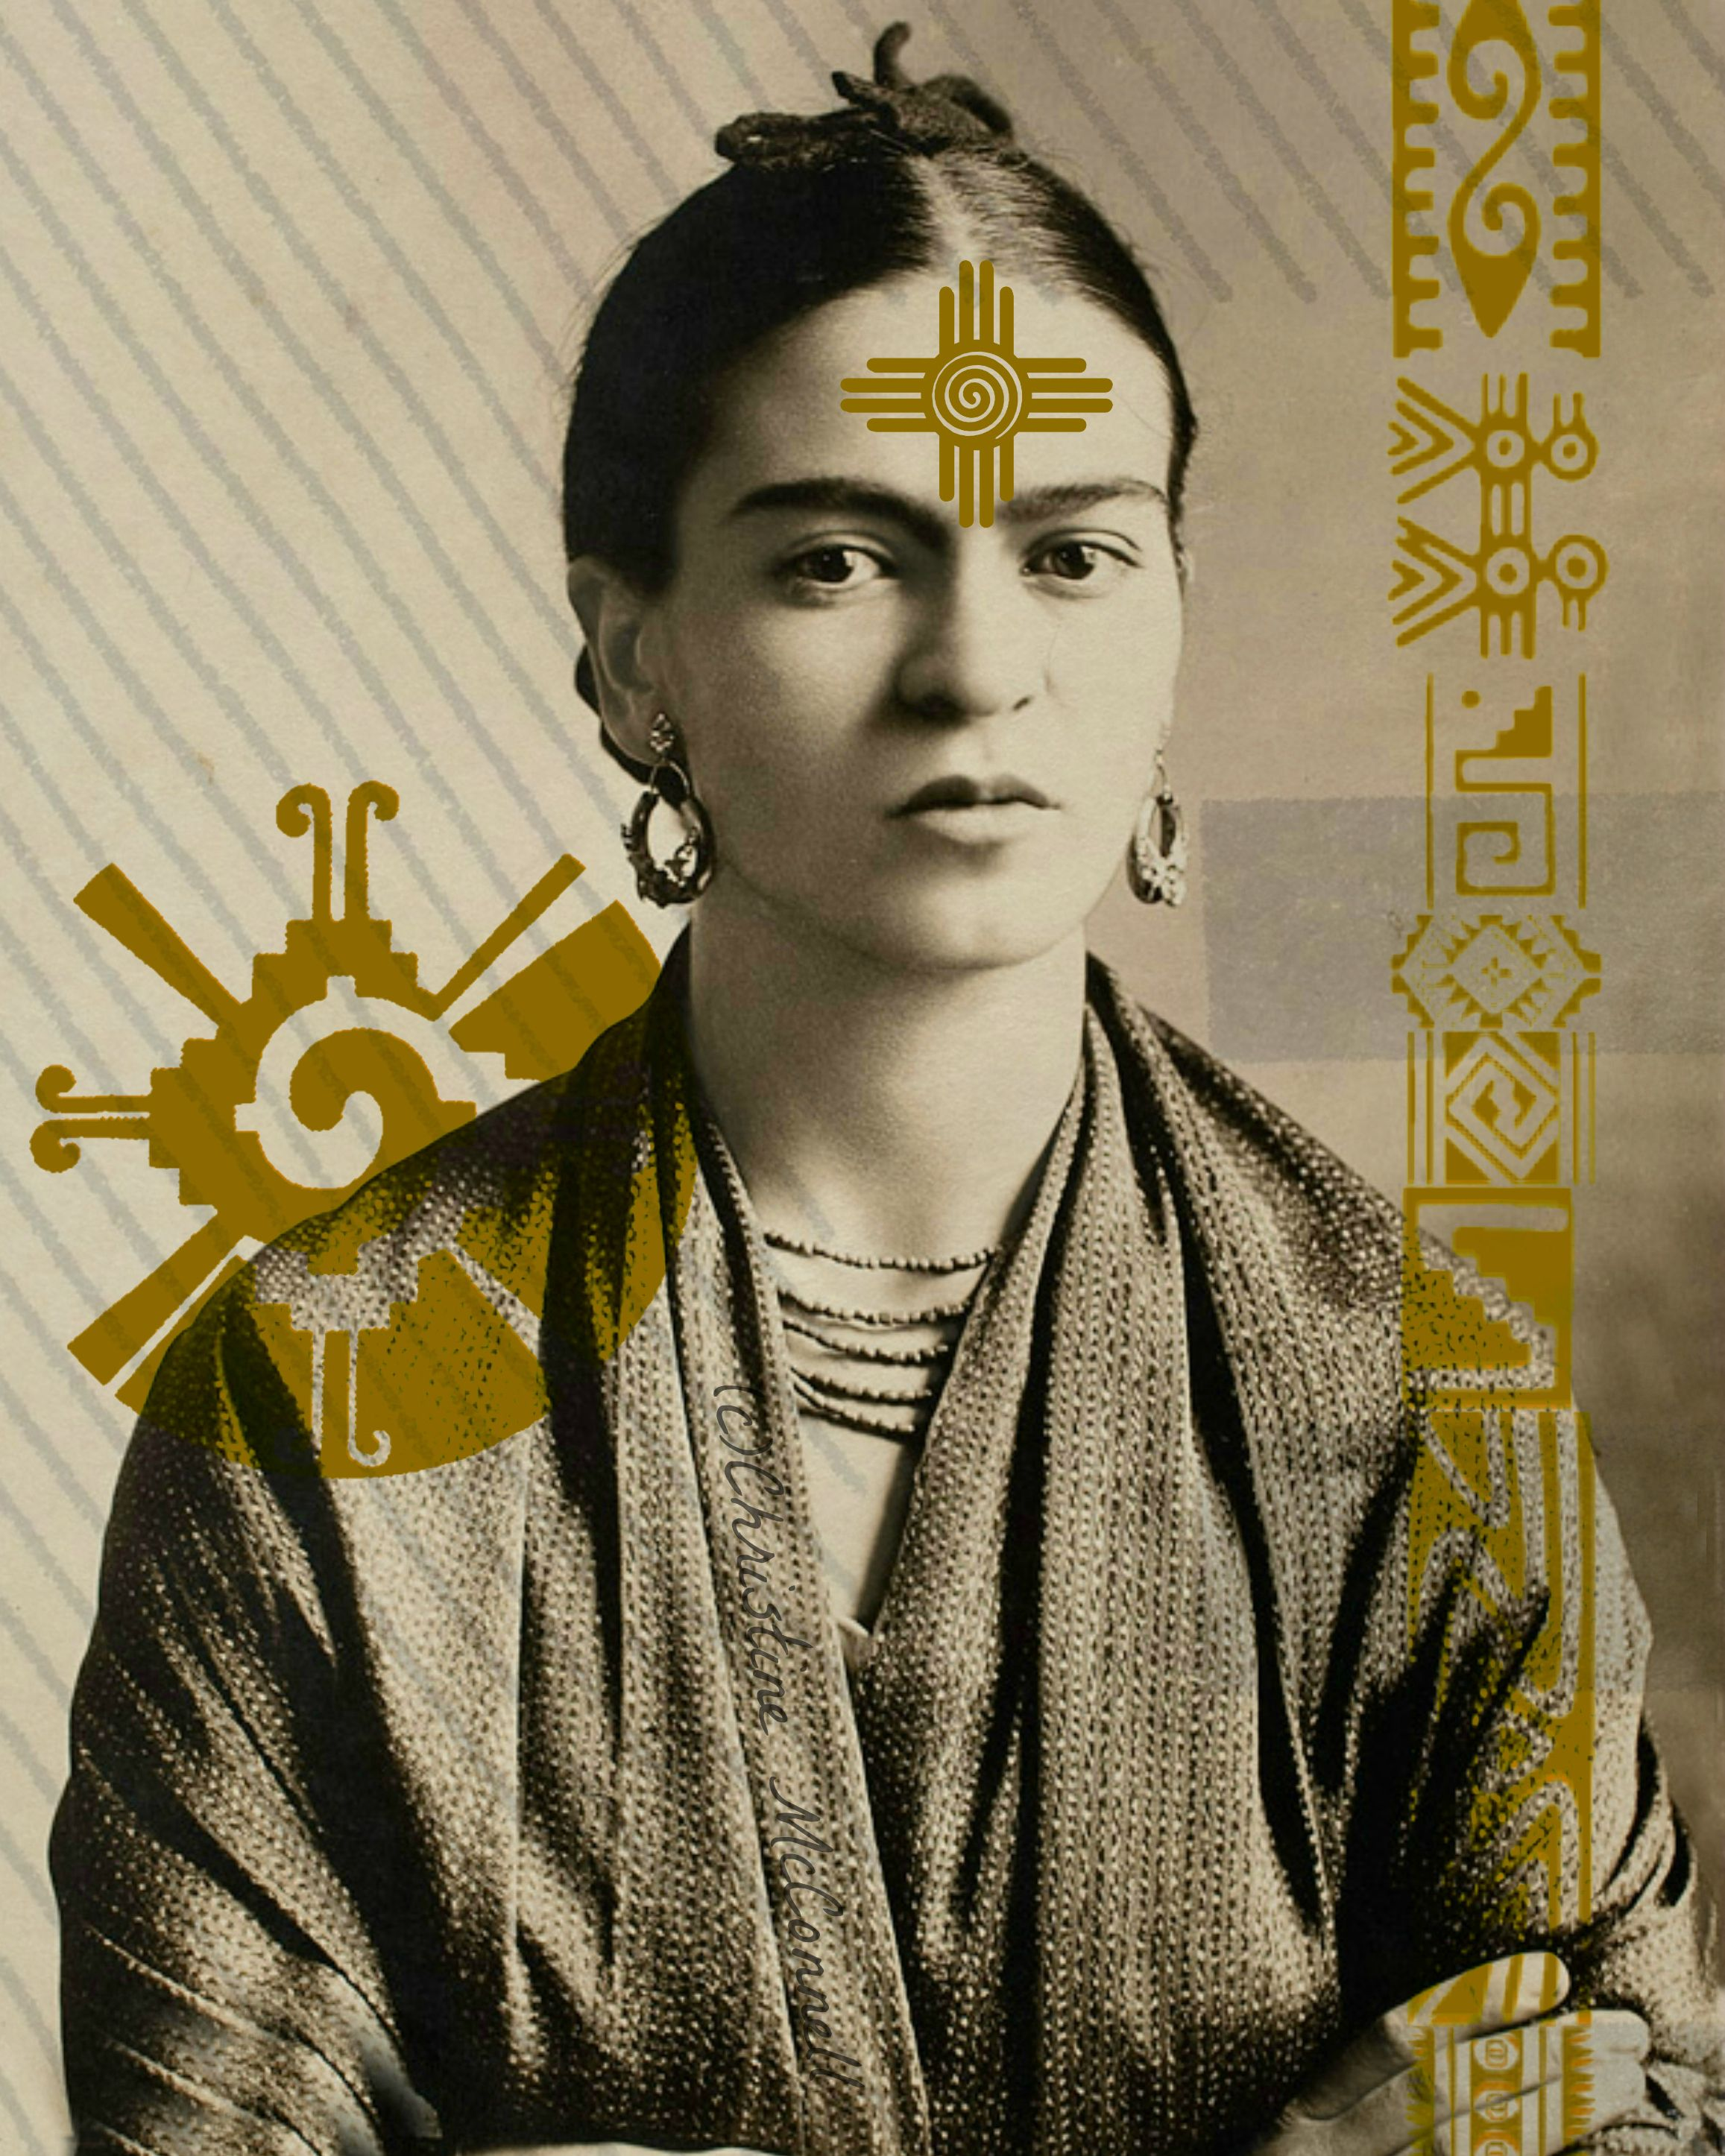 frida kahlo and surrealism Directed by julie taymor with salma hayek, alfred molina, geoffrey rush, m a maestro a biography of artist frida kahlo, who channeled the pain of a crippling injury and her tempestuous marriage into her work.